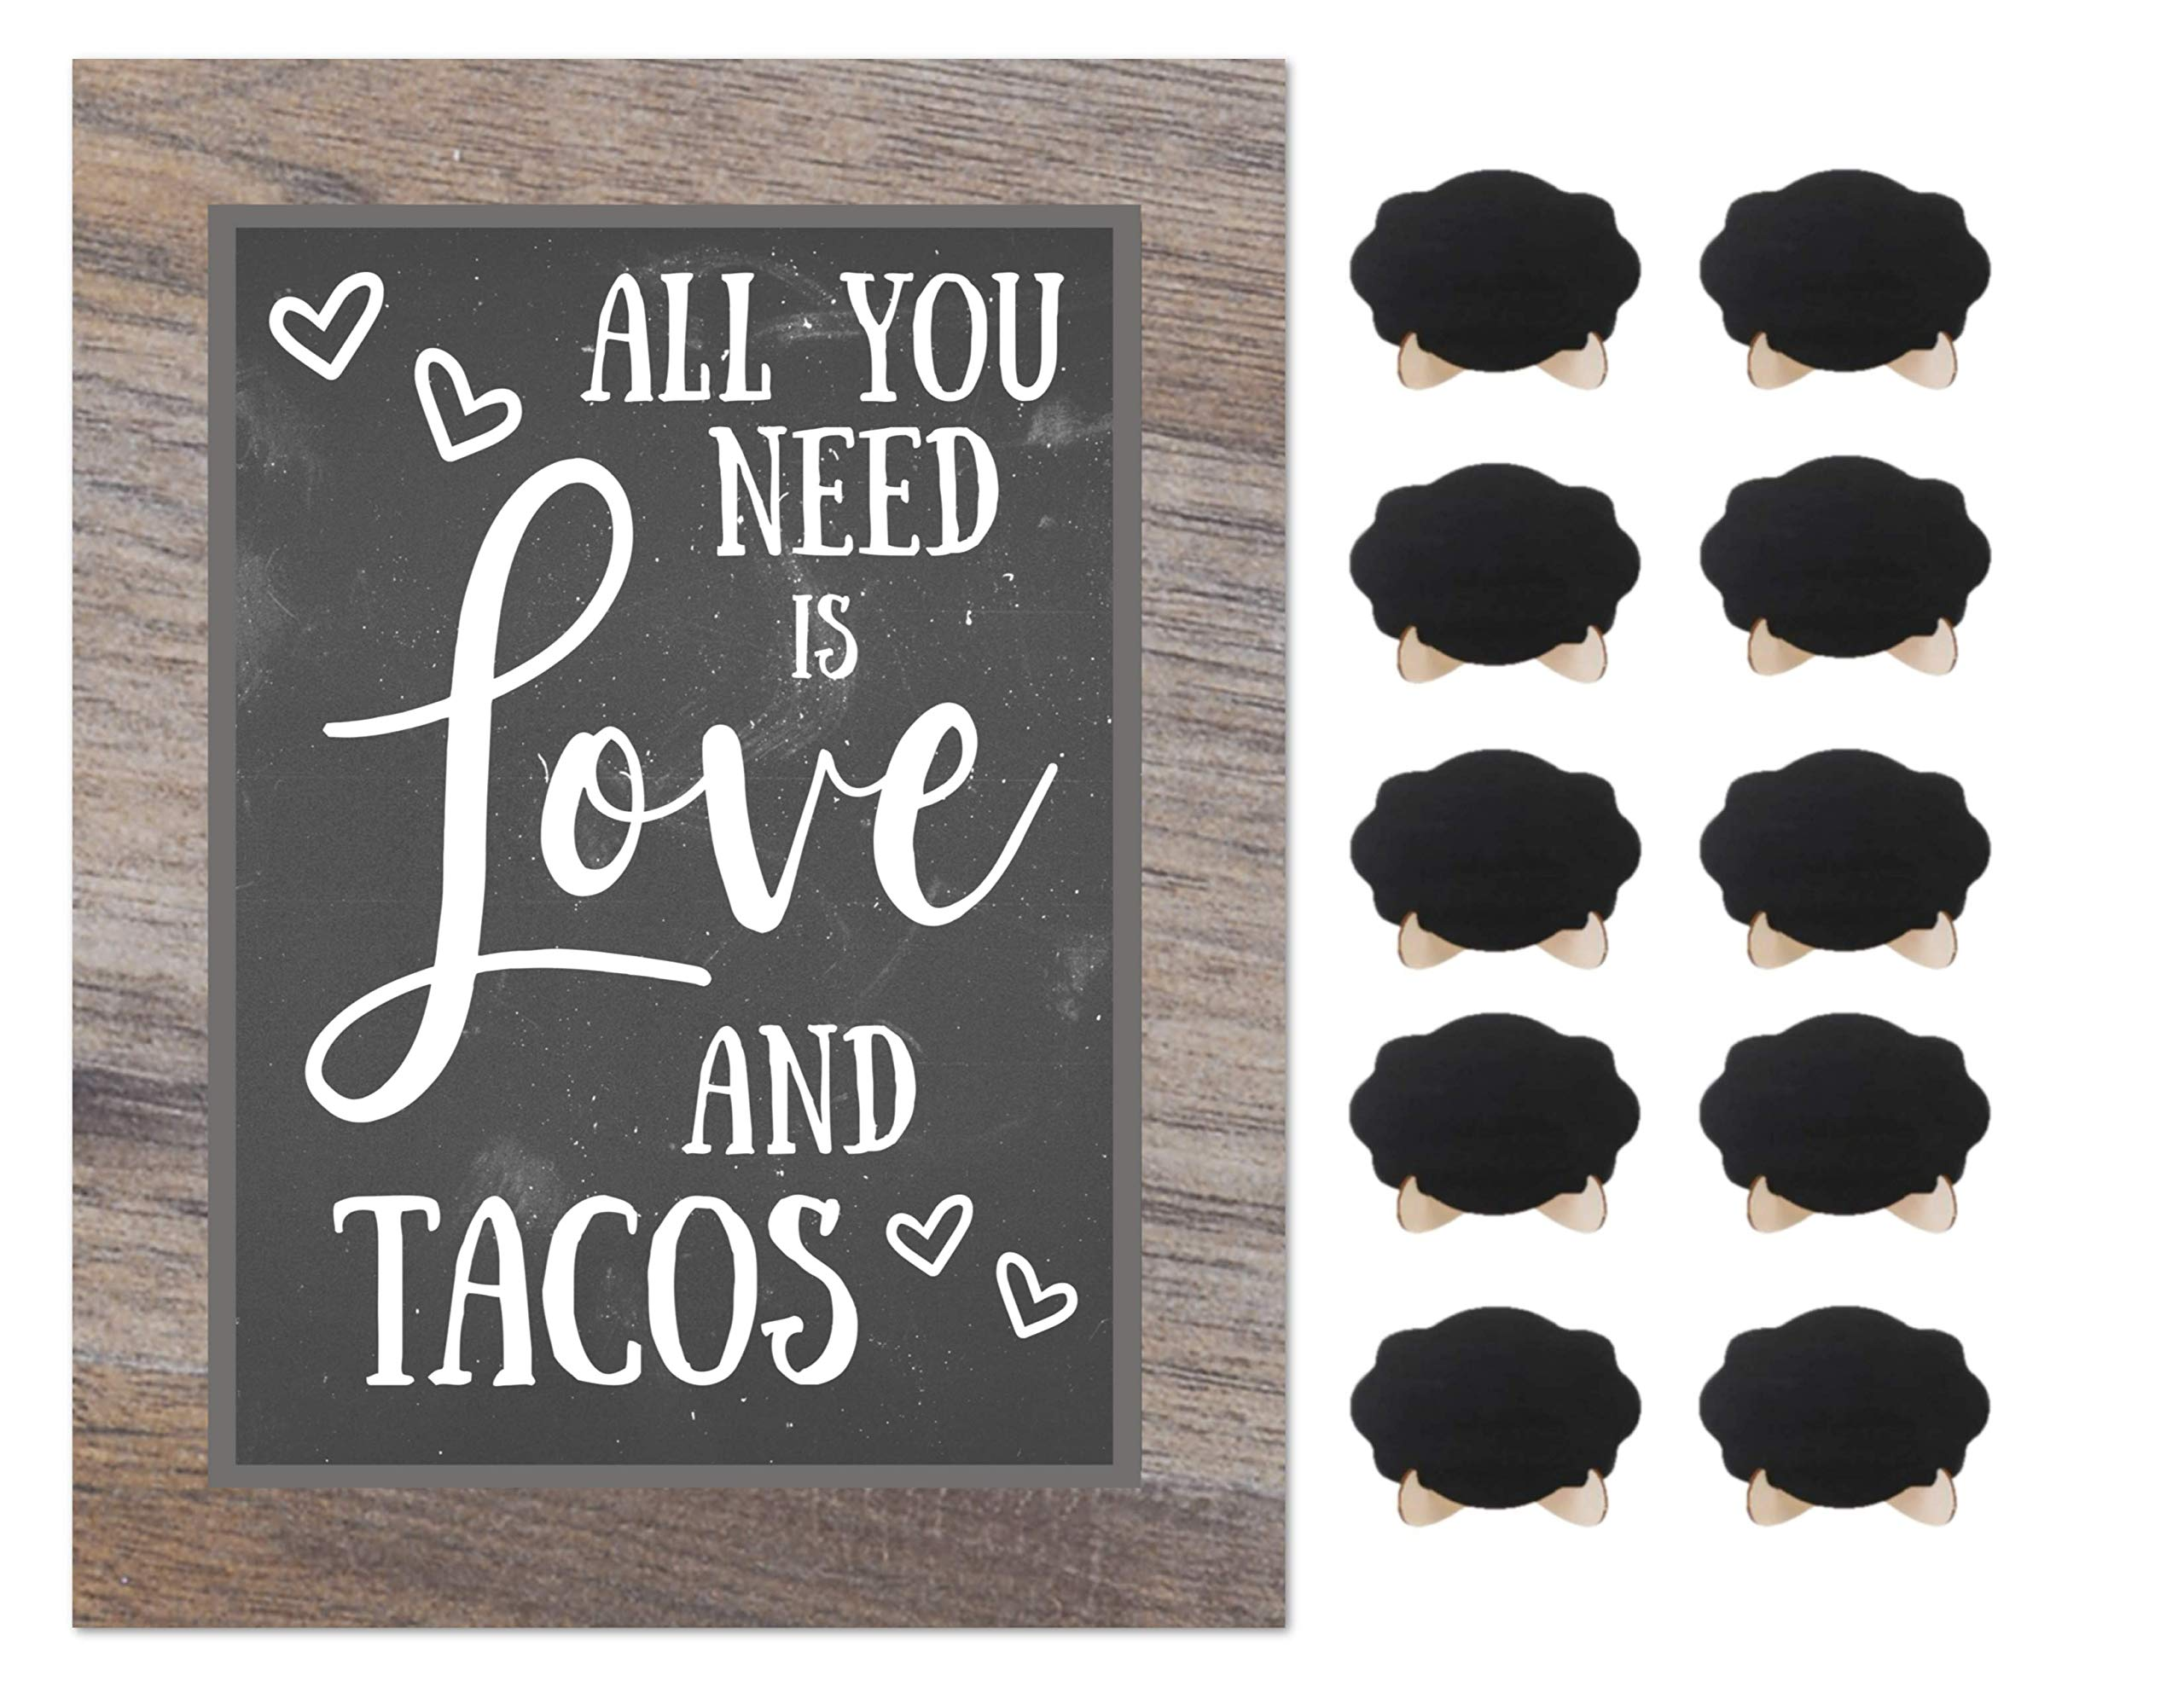 Taco Bar Party Rustic Chalkboard Sign Wedding Shower Buffet Supplies with 10 Small Mini Chalkboards Accessories